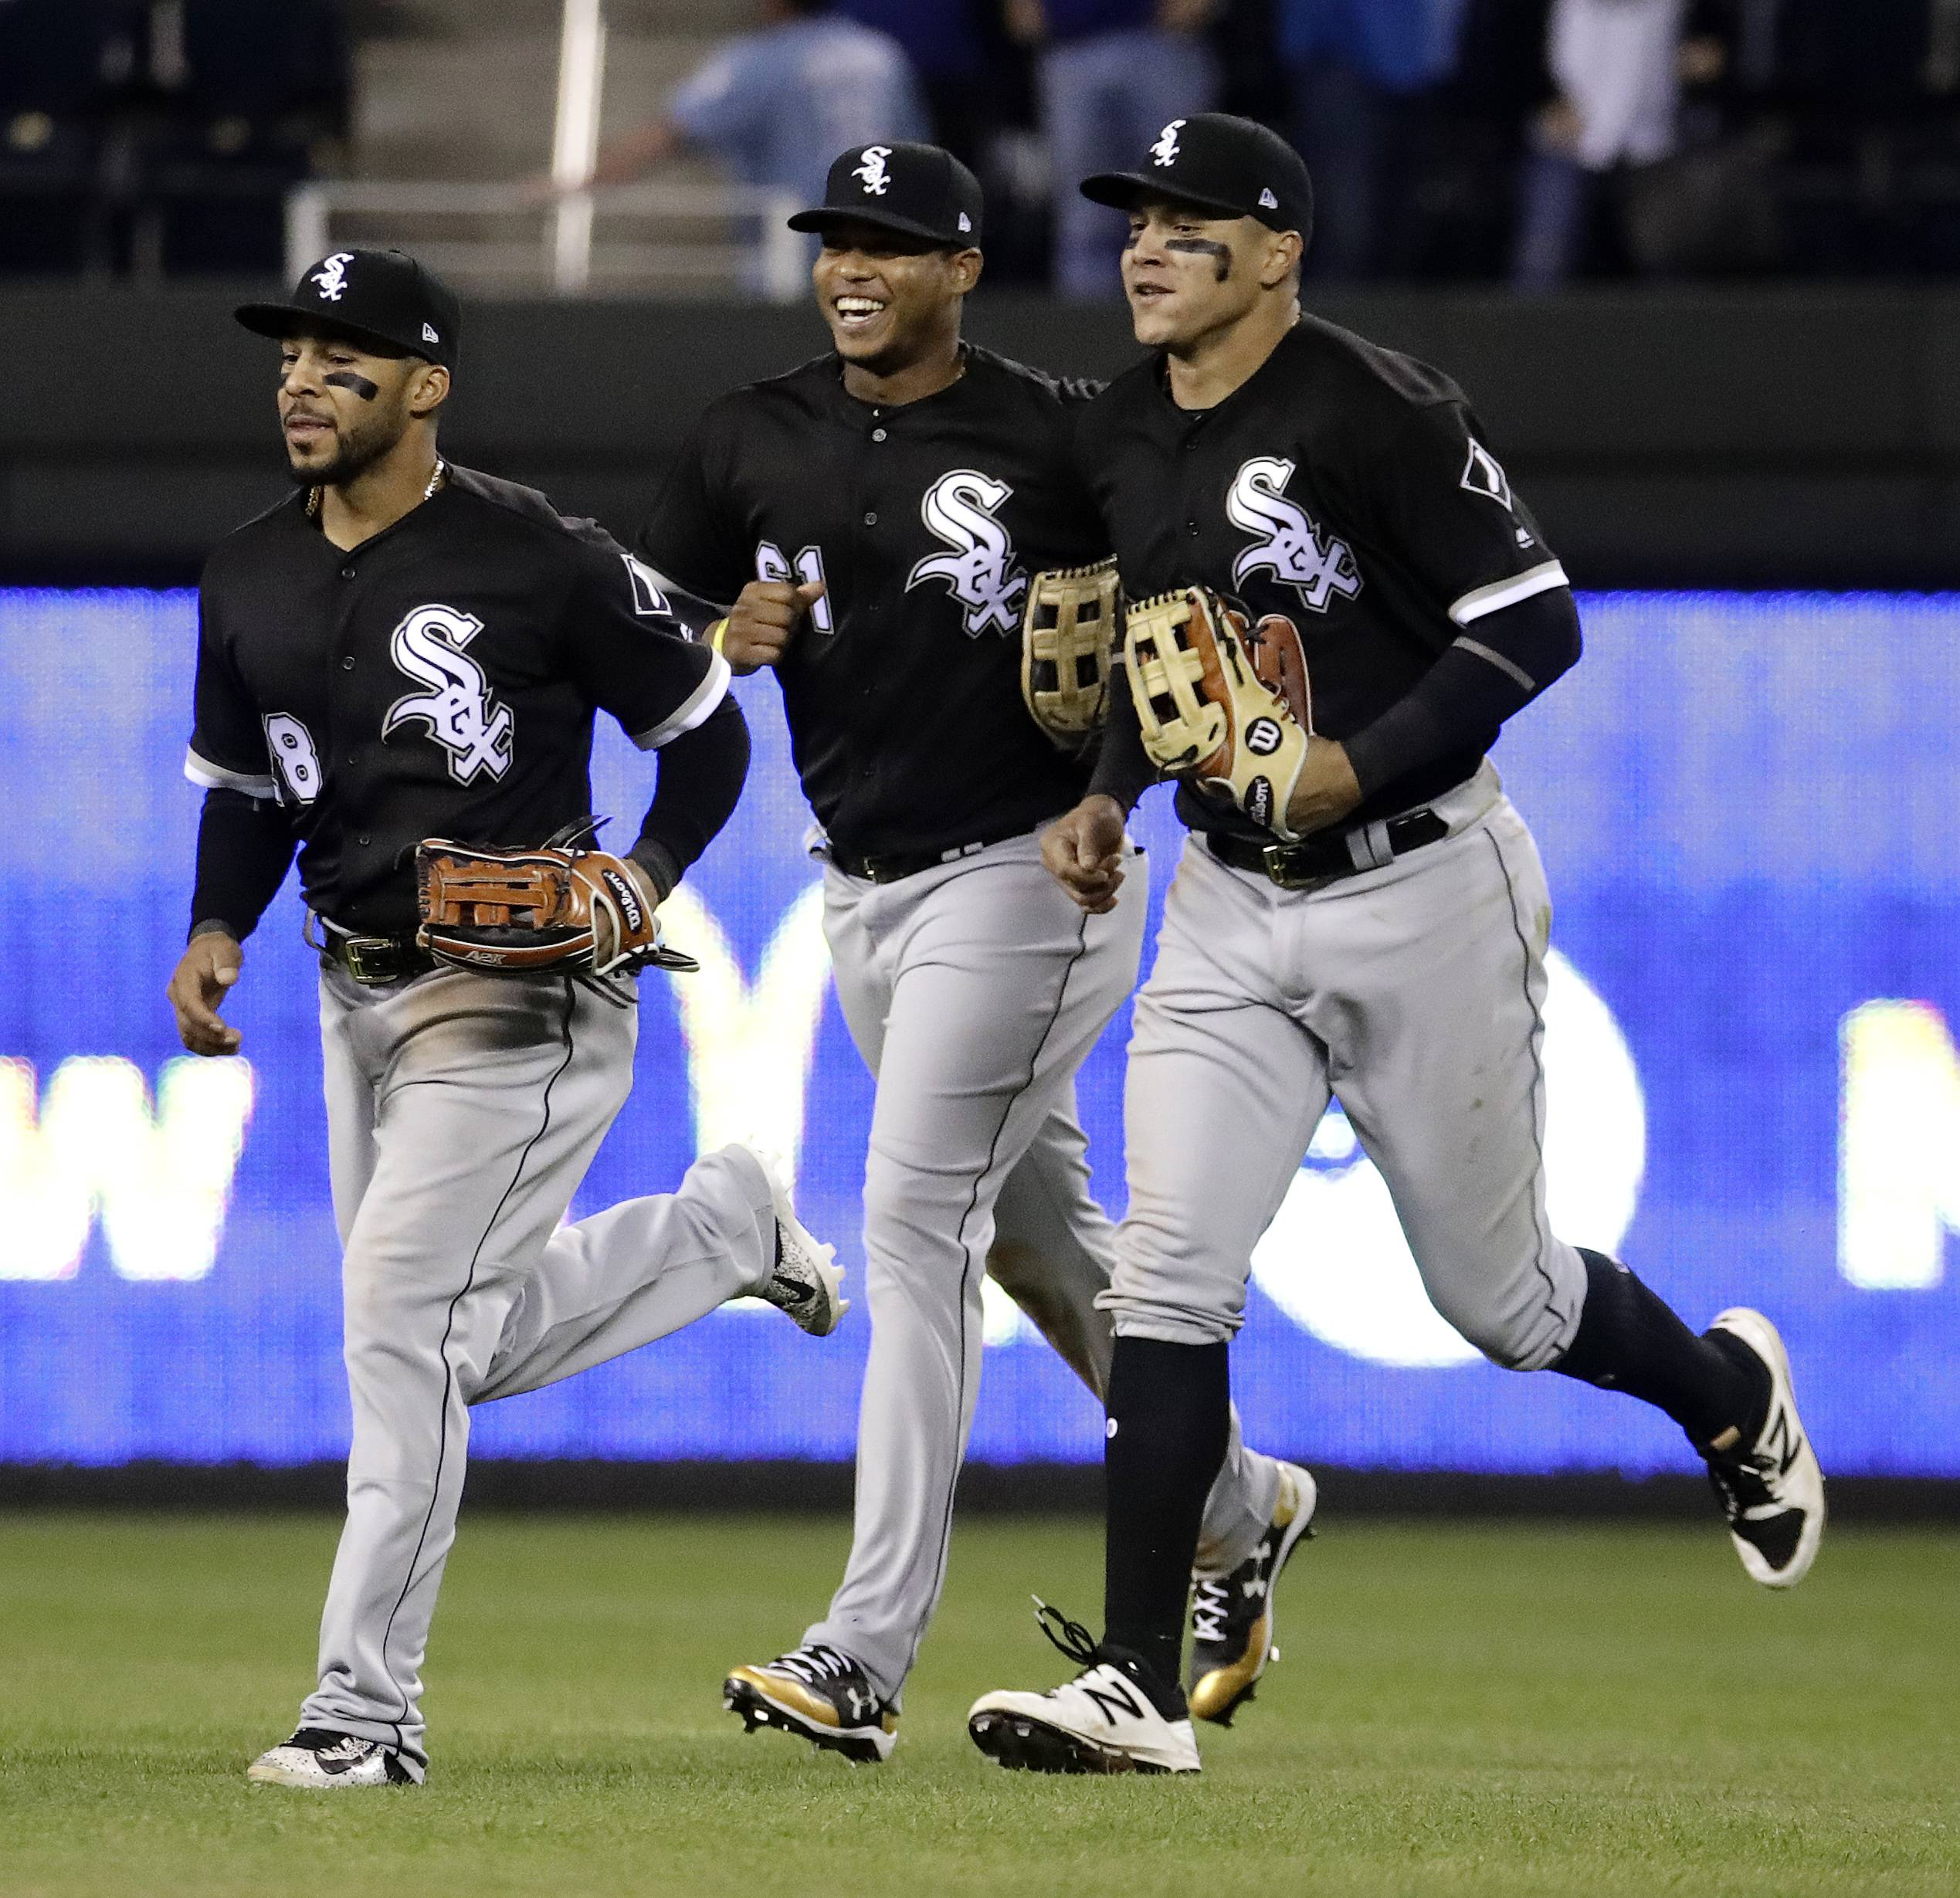 Chicago White Sox outfielder Willy Garcia, center, will replace Avisail Garcia, right, in tonight's lineup against the Cubs. That's Leury Garcia, at left, who is on a rehab assignment.